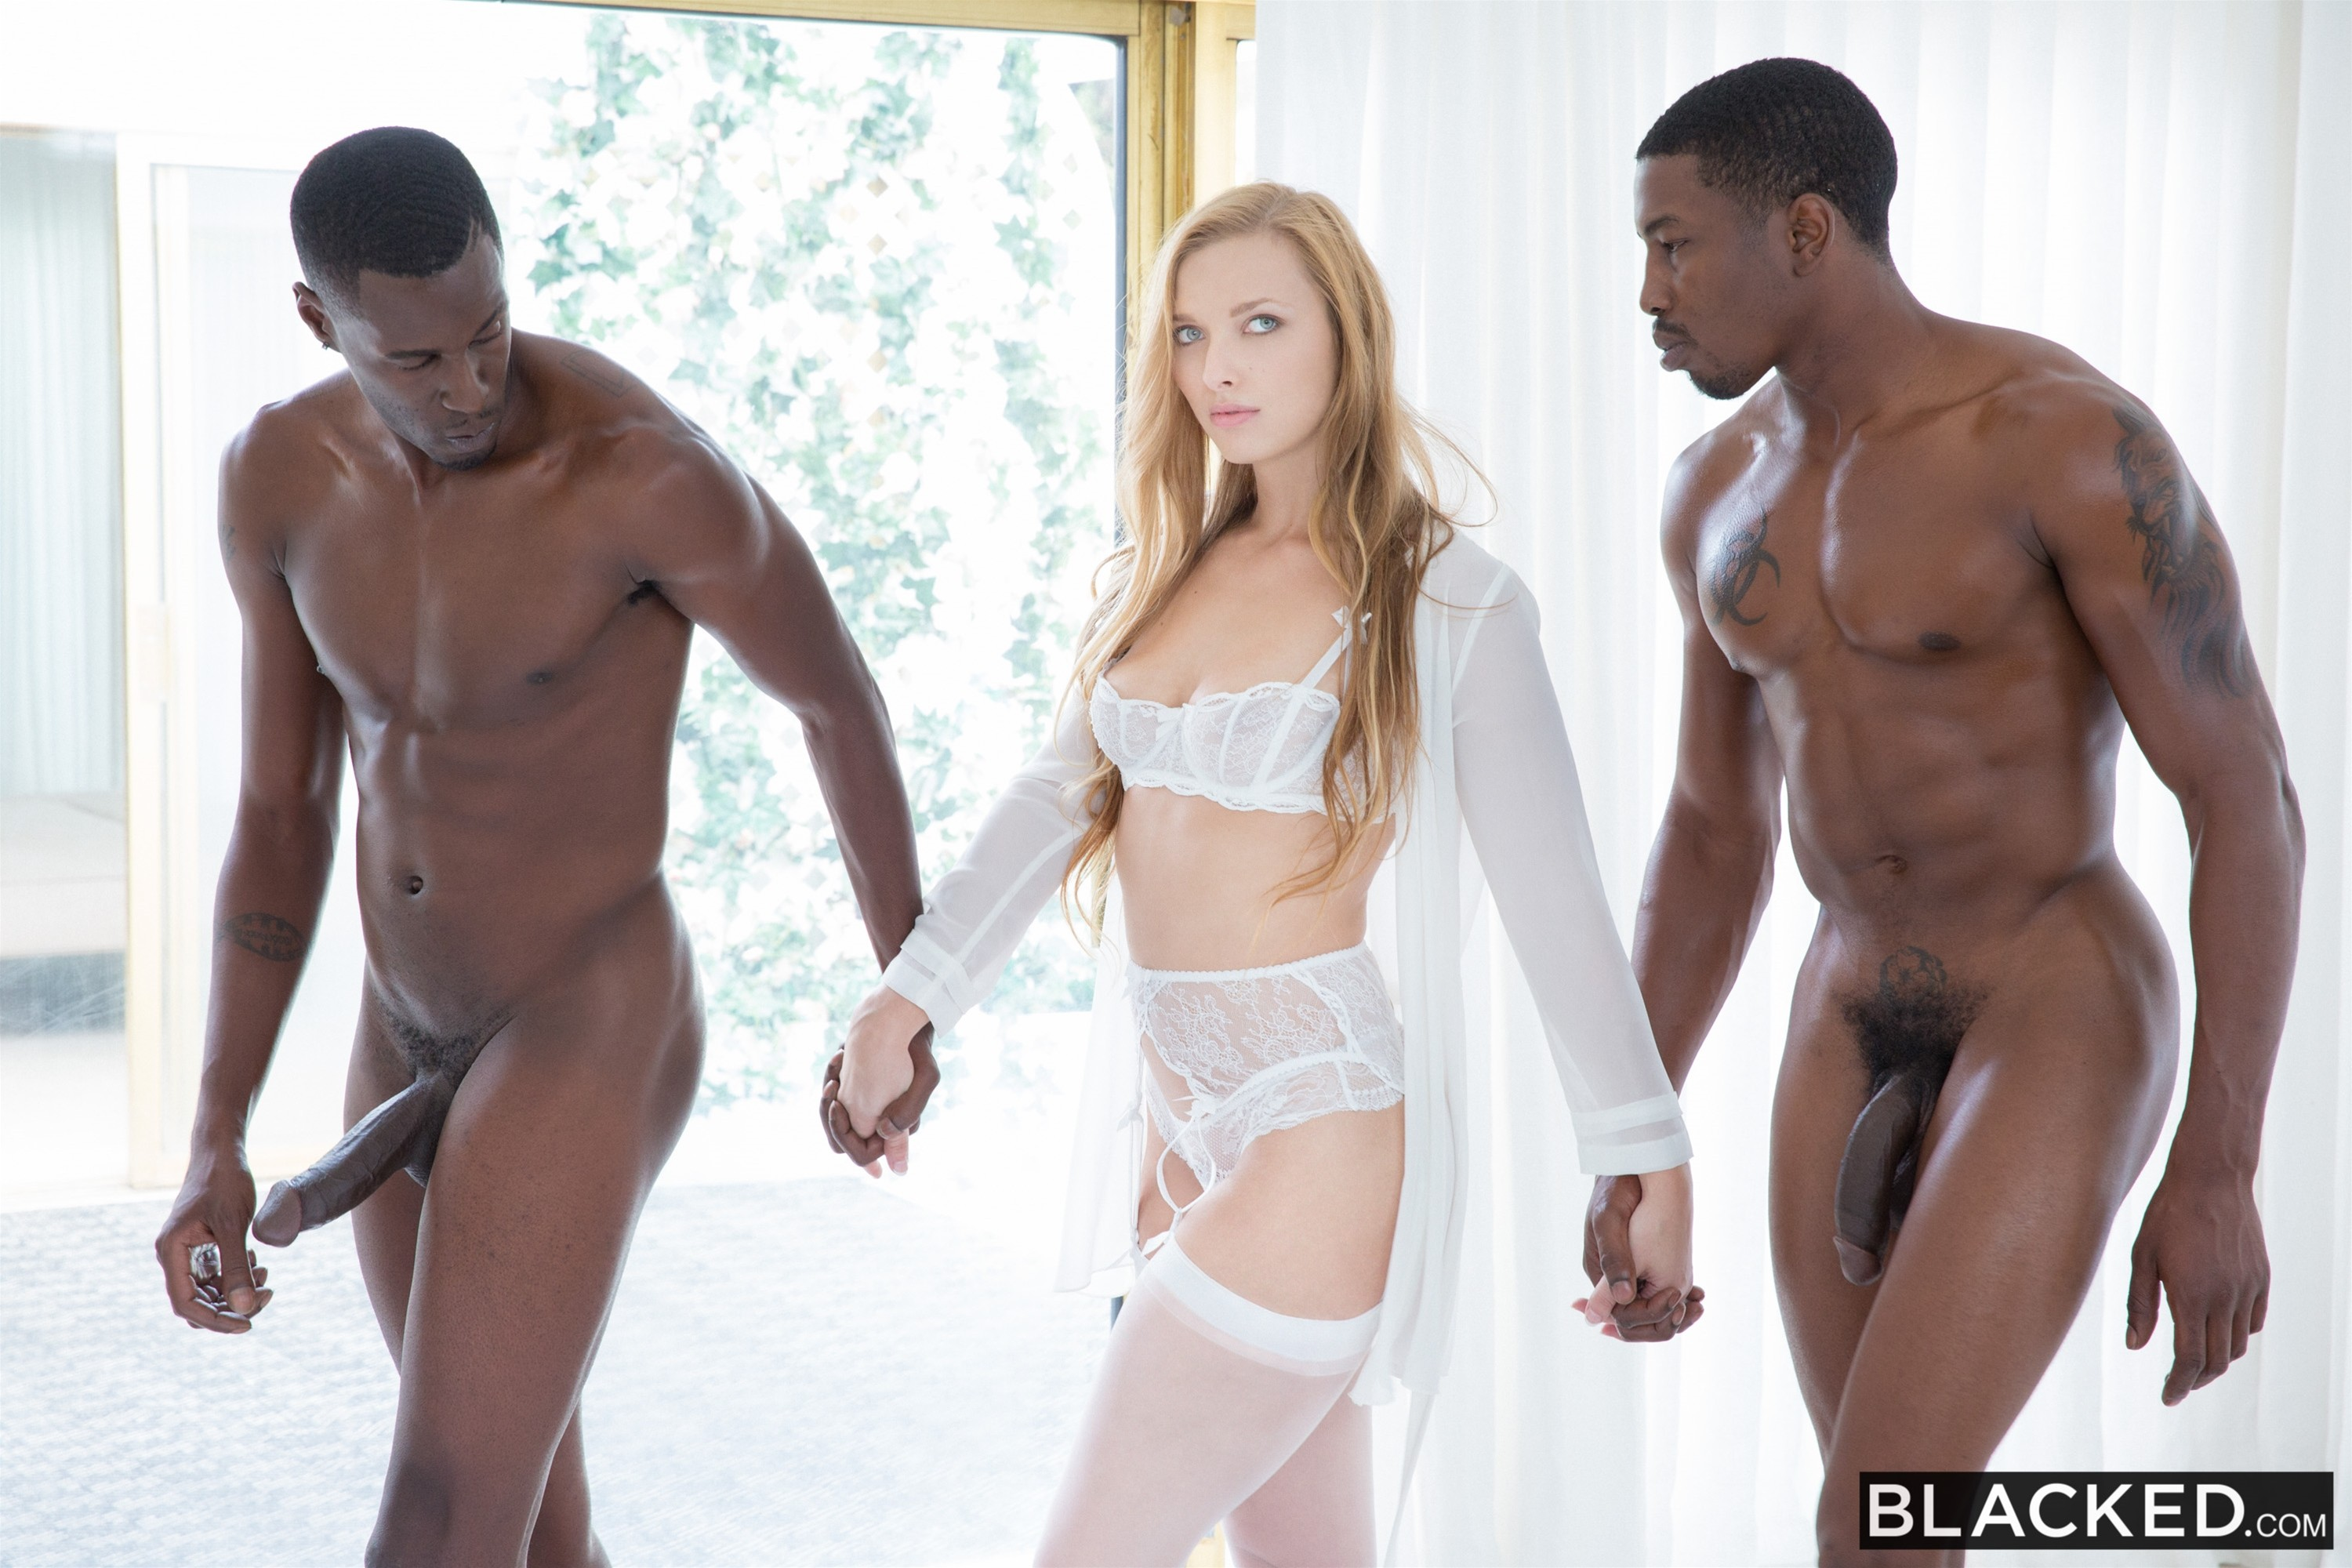 Reluctant interracial threesome